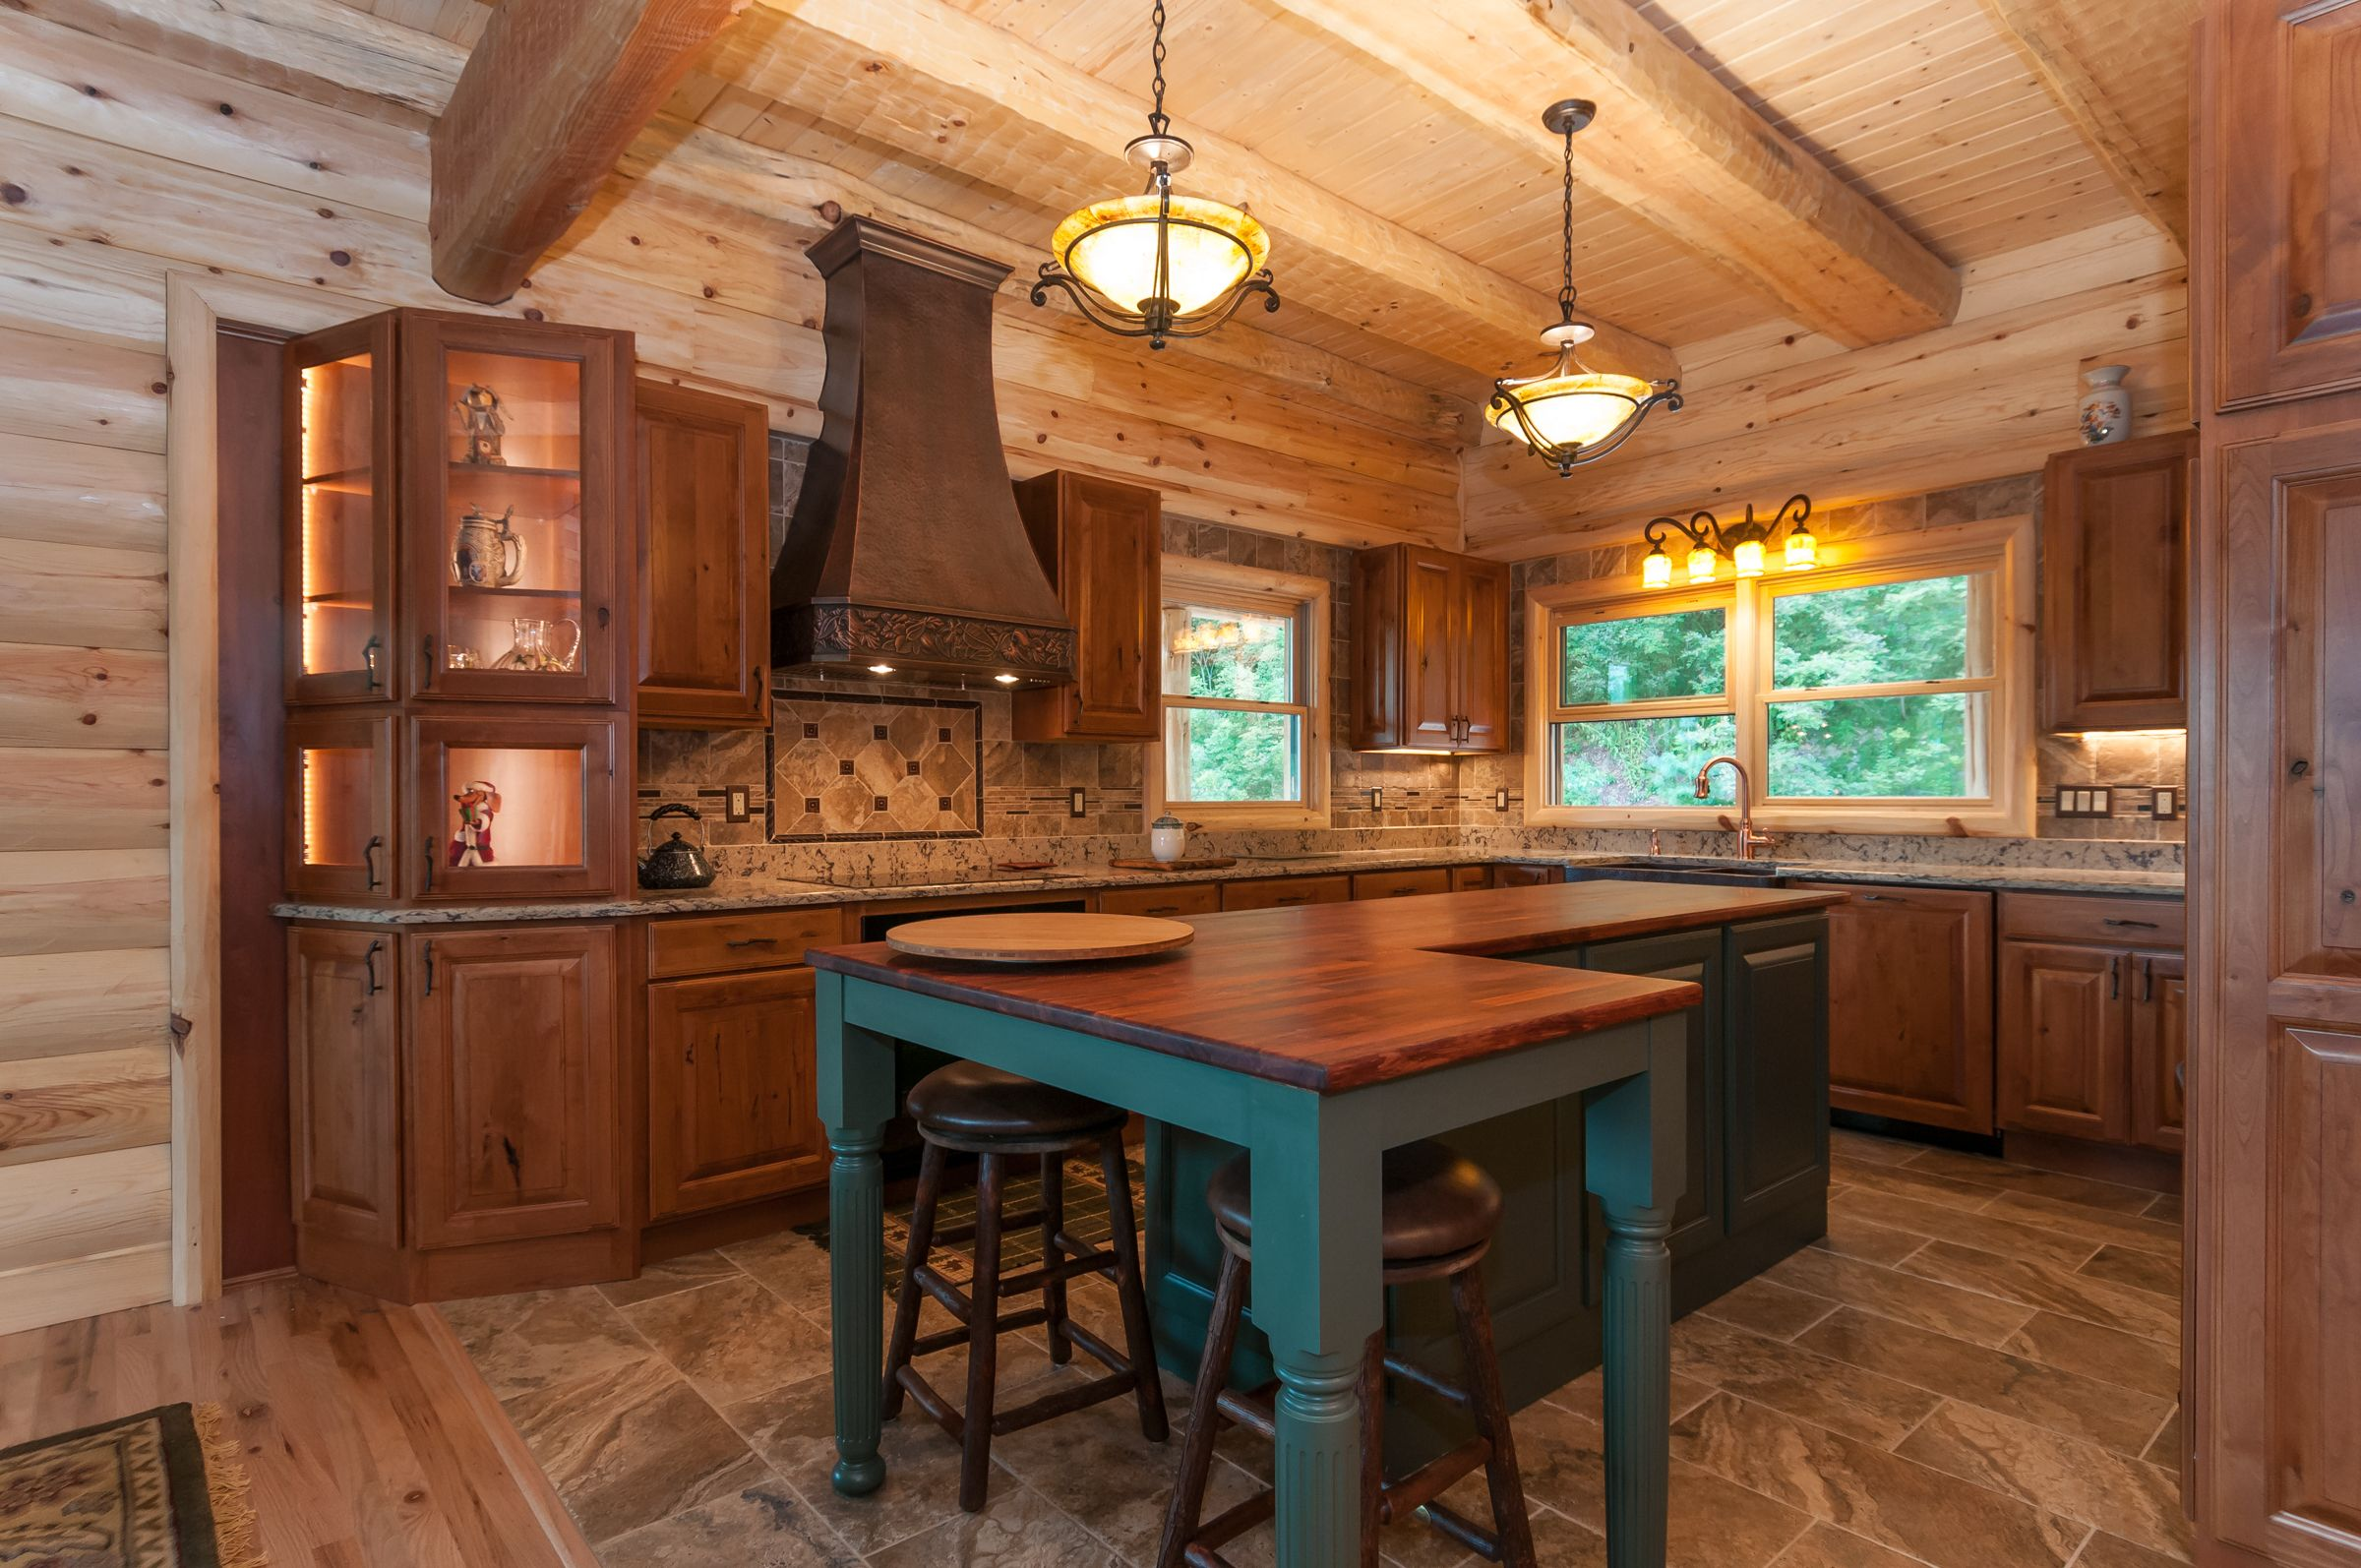 Modern Kitchen Mountain Modern Mountain Home Kitchen Ideas Log Cabin Log Cabin Kitchen Kitchen Island Cabin Kitchens Small Cabin Kitchens Small Kitchen